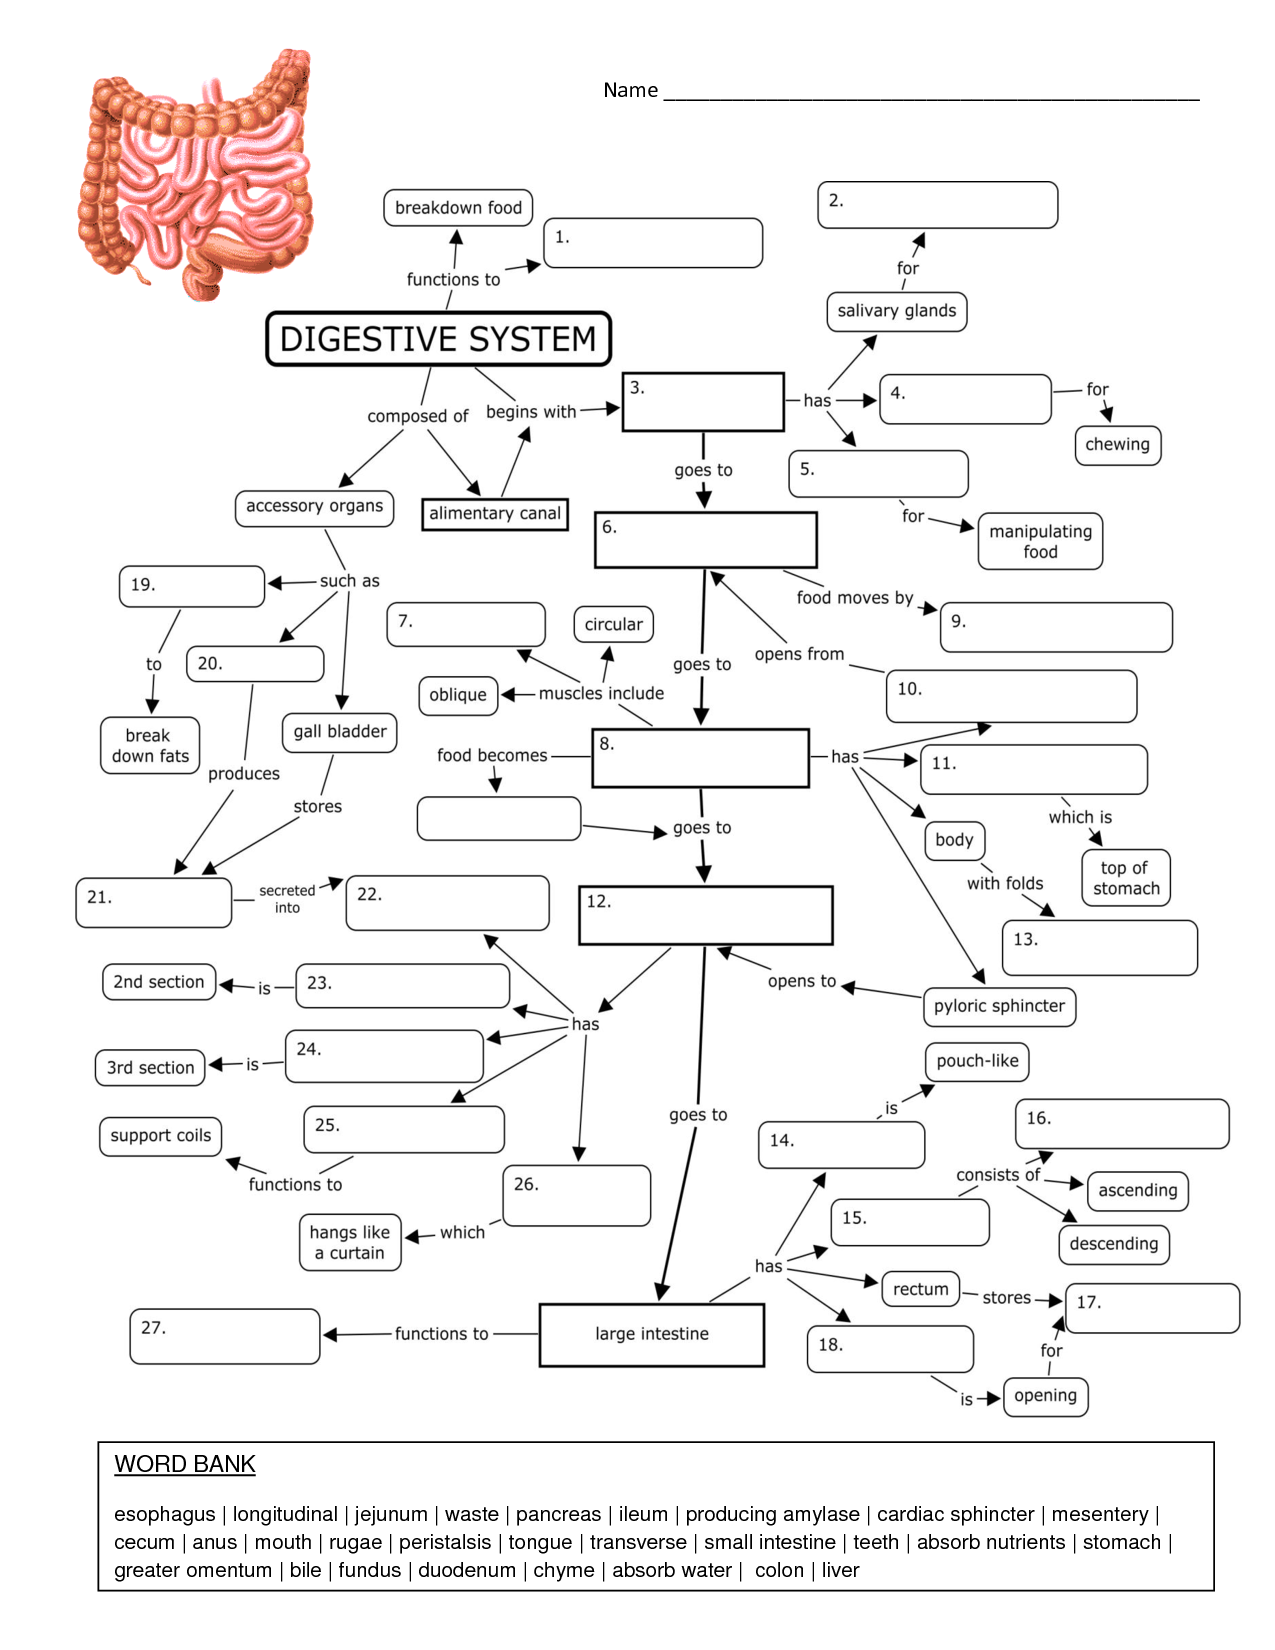 worksheet Skills Worksheet Concept Mapping httpwww docstoc comdocs89897093digestion concept map the shows how all parts of digestive system are related this worksheet is intended to help students learn about the